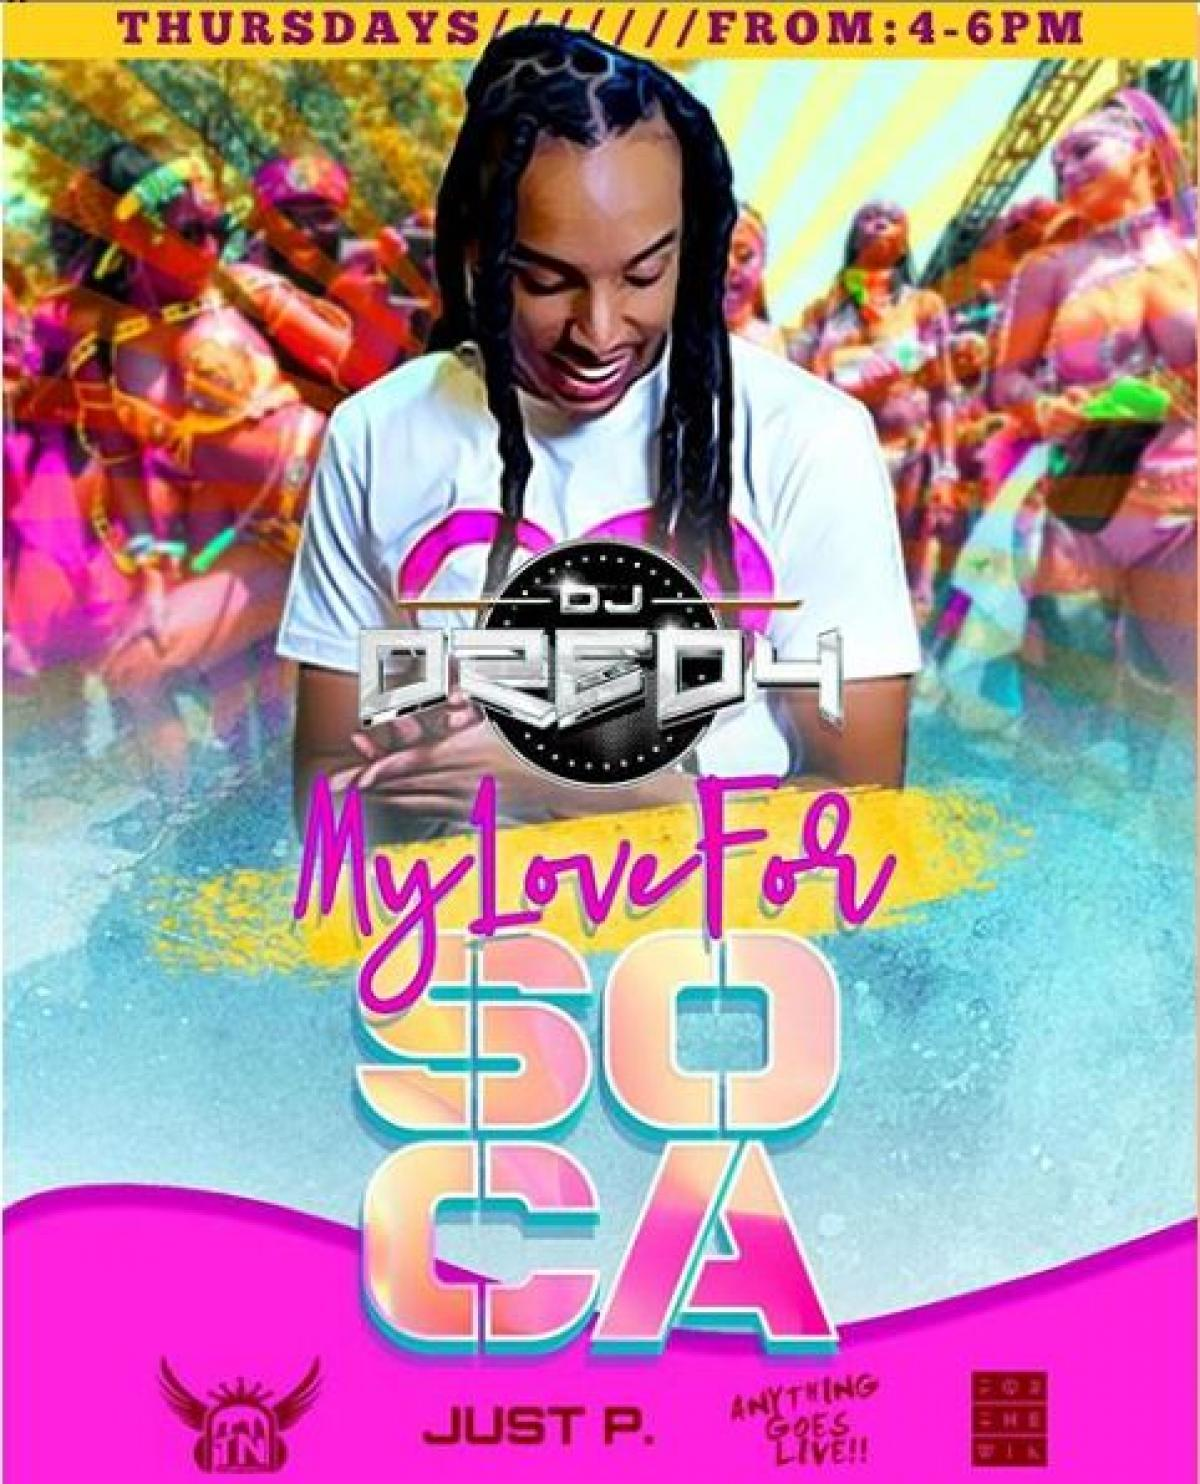 My Love For Soca flyer or graphic.